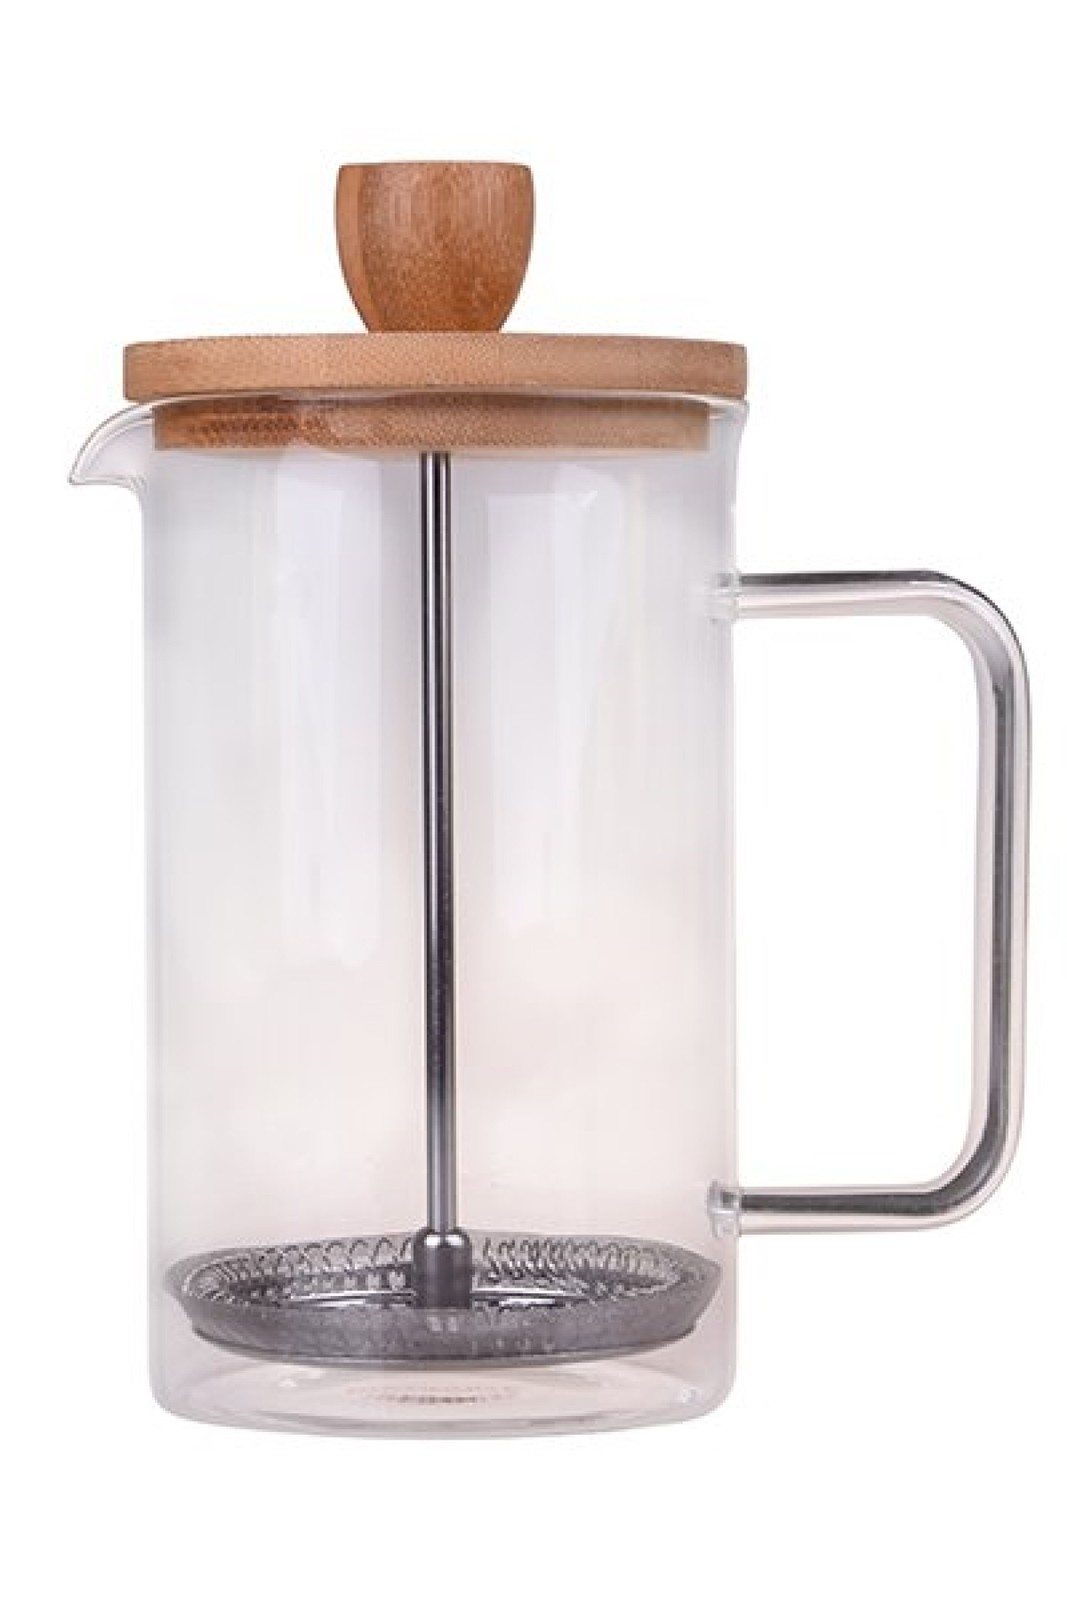 Devin's Bistro French Press Coffee Plunger - Bamboo Boho Design 350 ml and 600 m